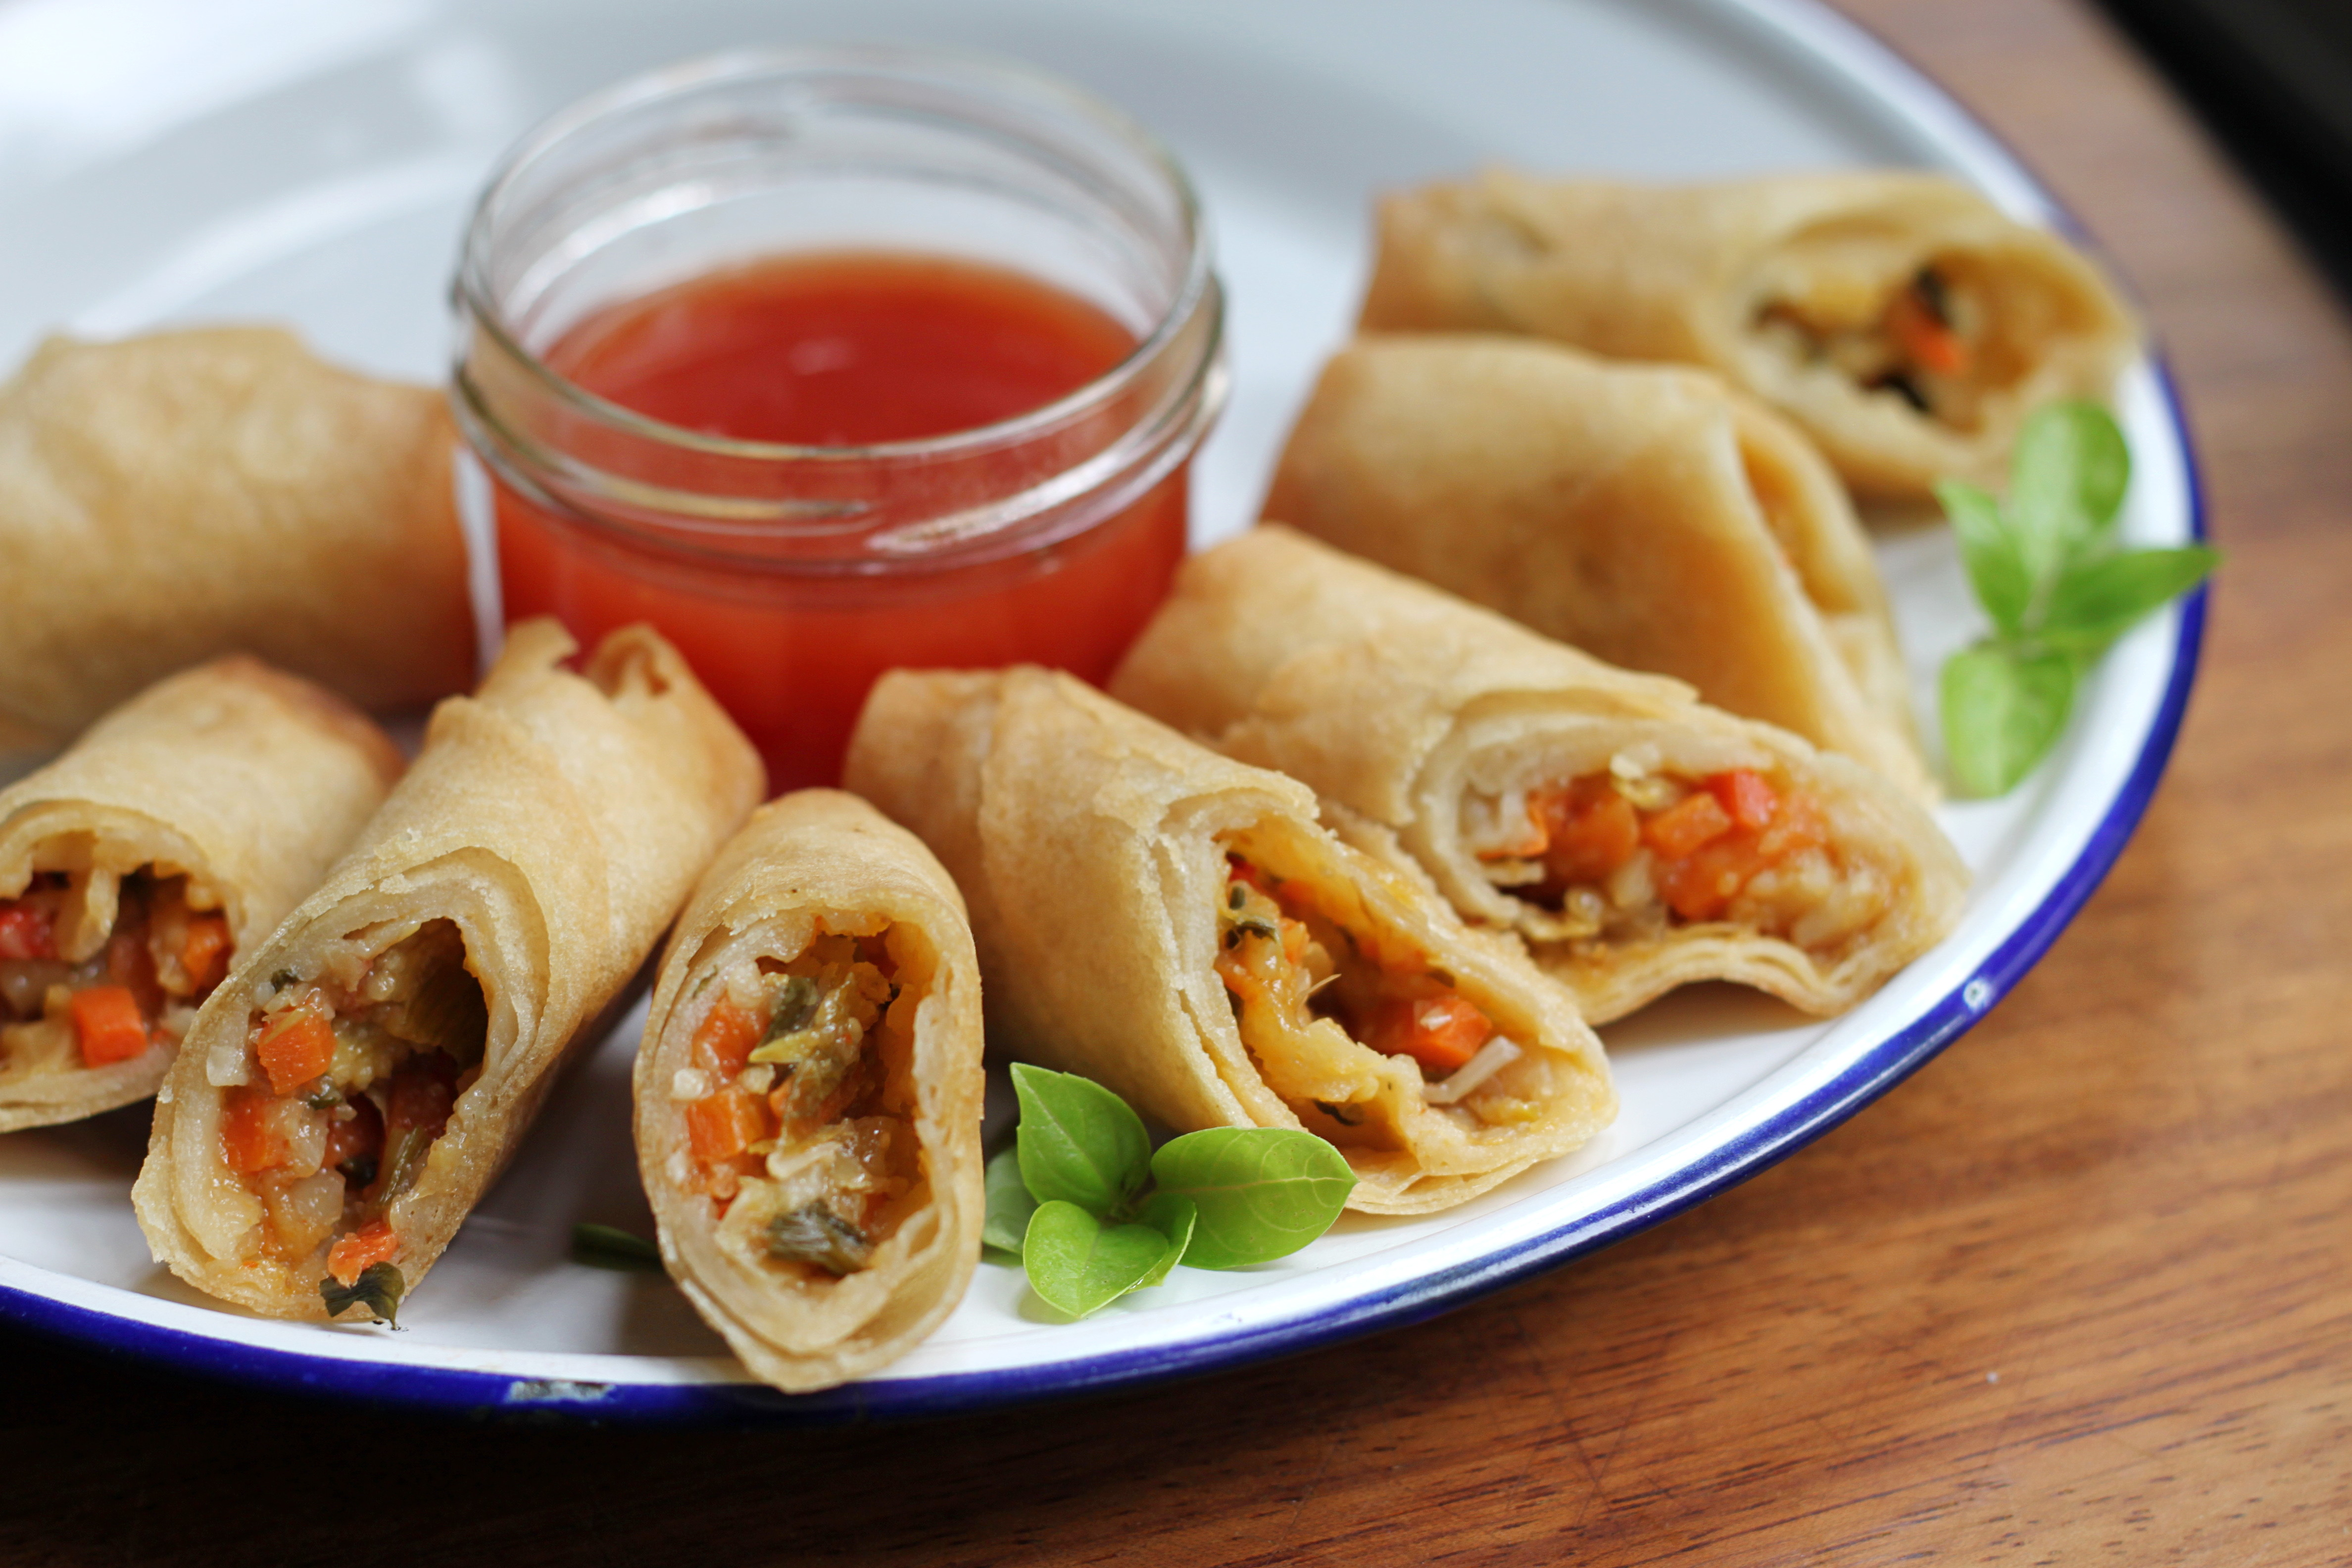 Is It Egg Roll or Eggroll? Recipe